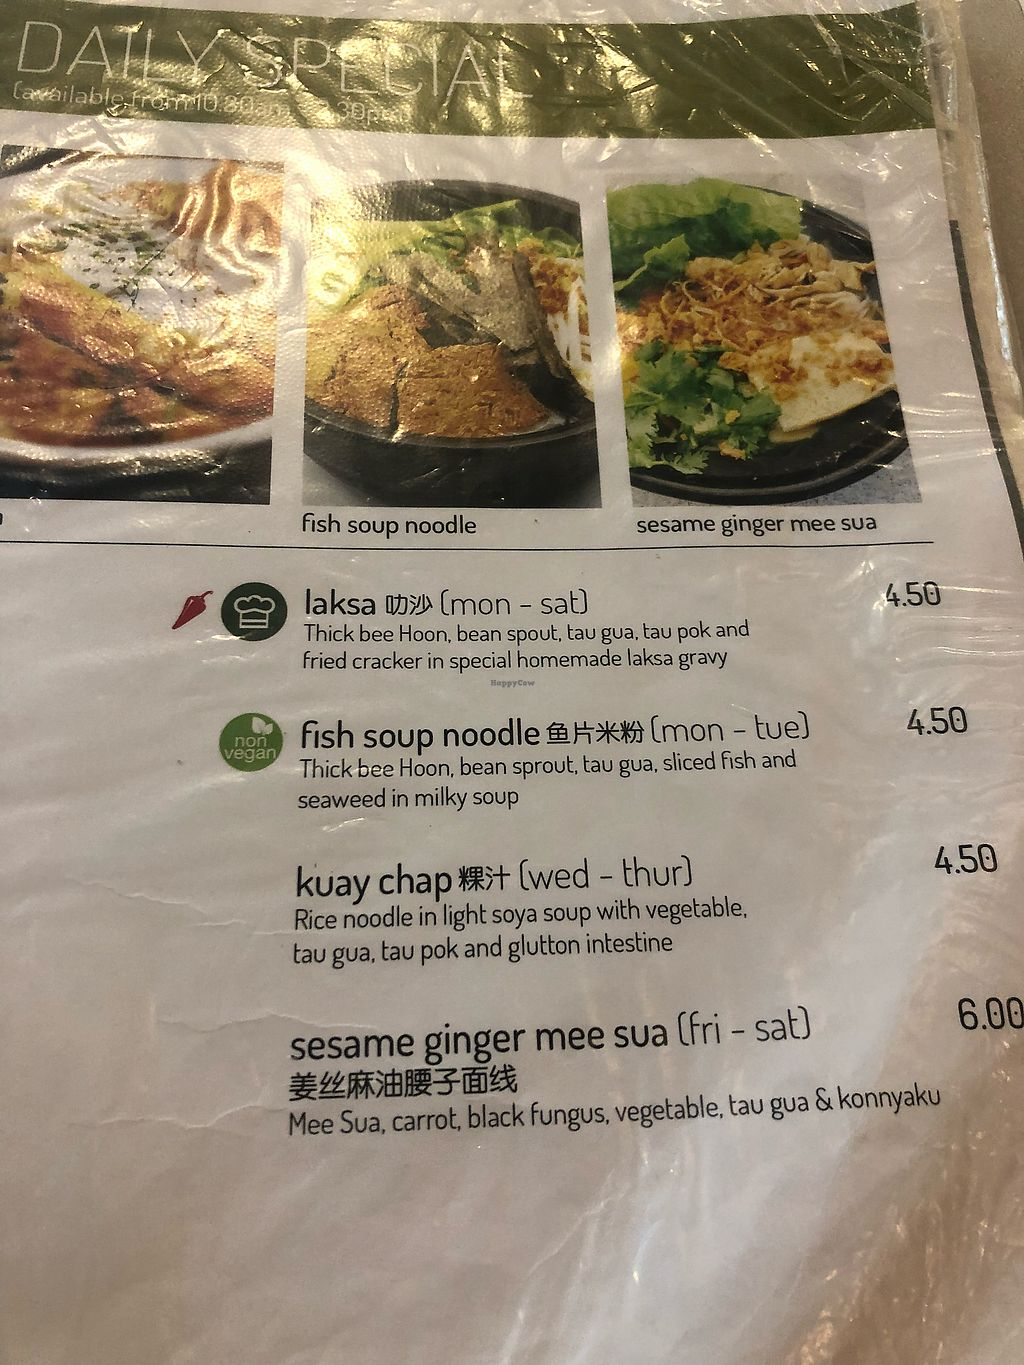 """Photo of Yuan Vegetarian Bistro  by <a href=""""/members/profile/AmyLeySzeThoo"""">AmyLeySzeThoo</a> <br/>Daily Special Menu <br/> March 23, 2018  - <a href='/contact/abuse/image/43835/374765'>Report</a>"""